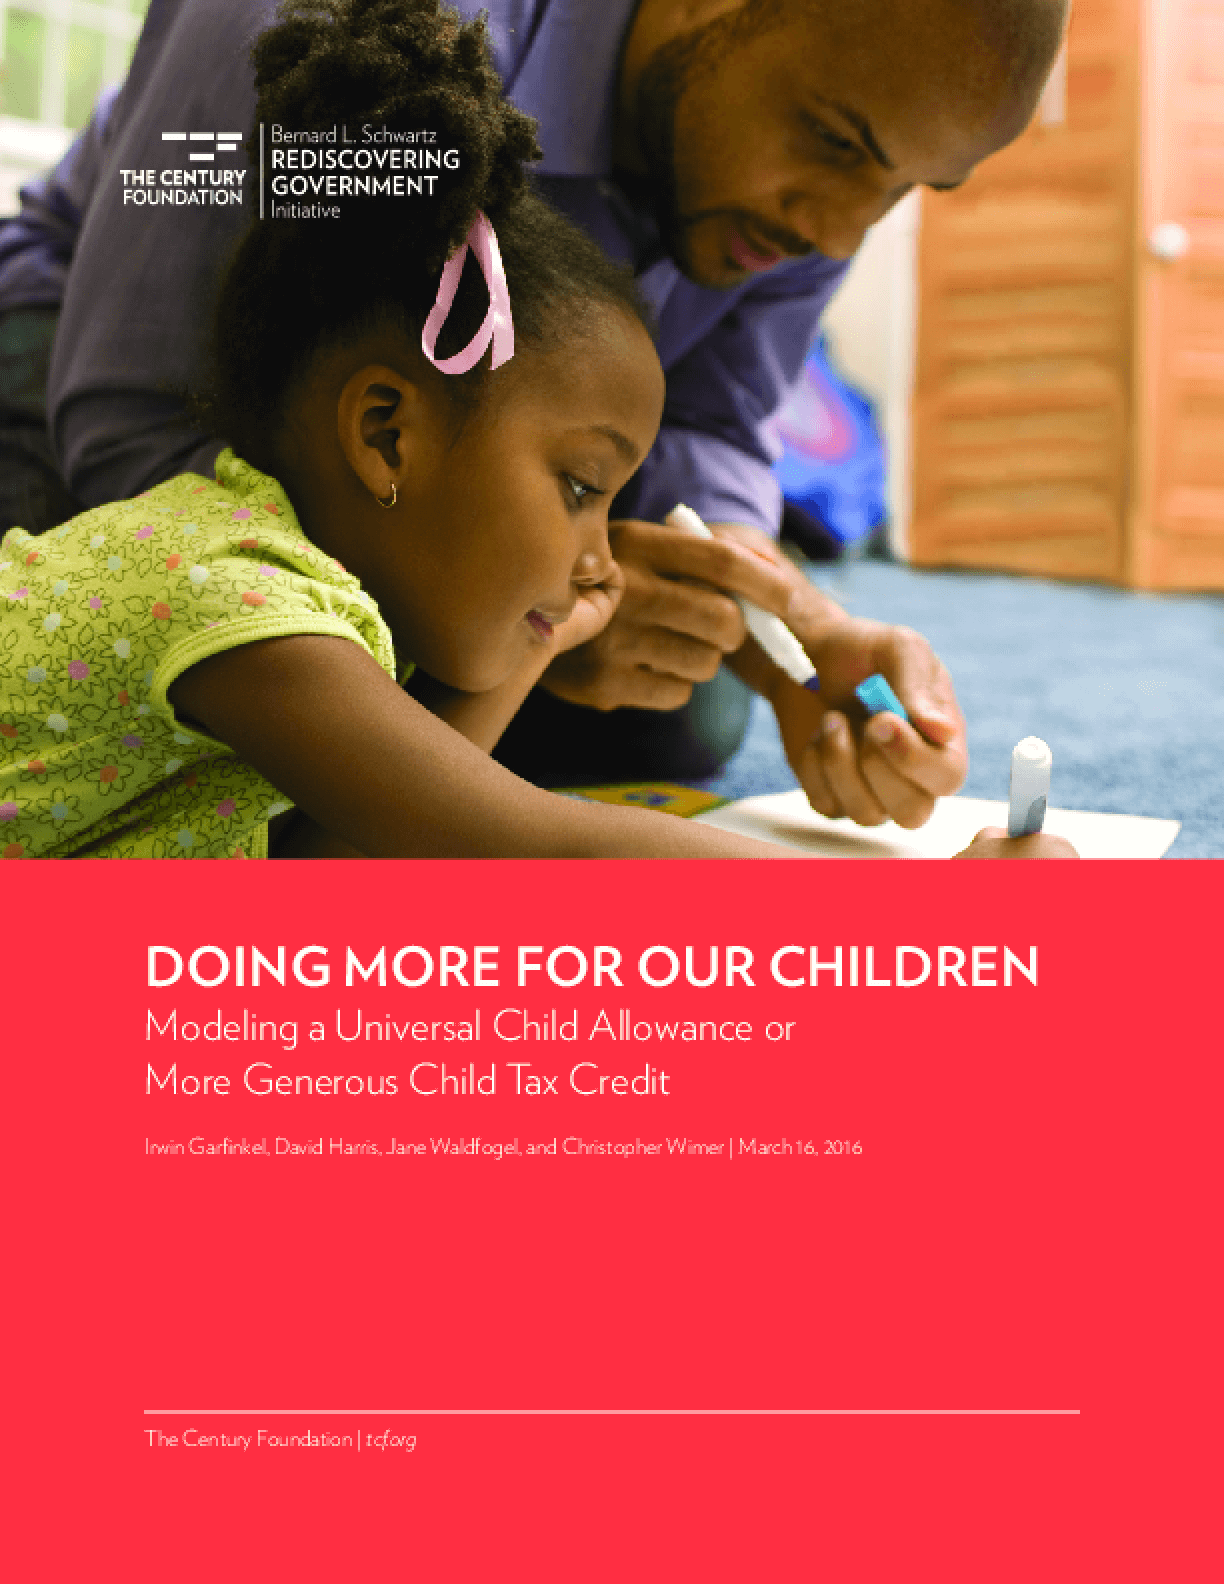 Doing More for Our Children: Modeling a Universal Child Allowance or More Generous Child Tax Credit